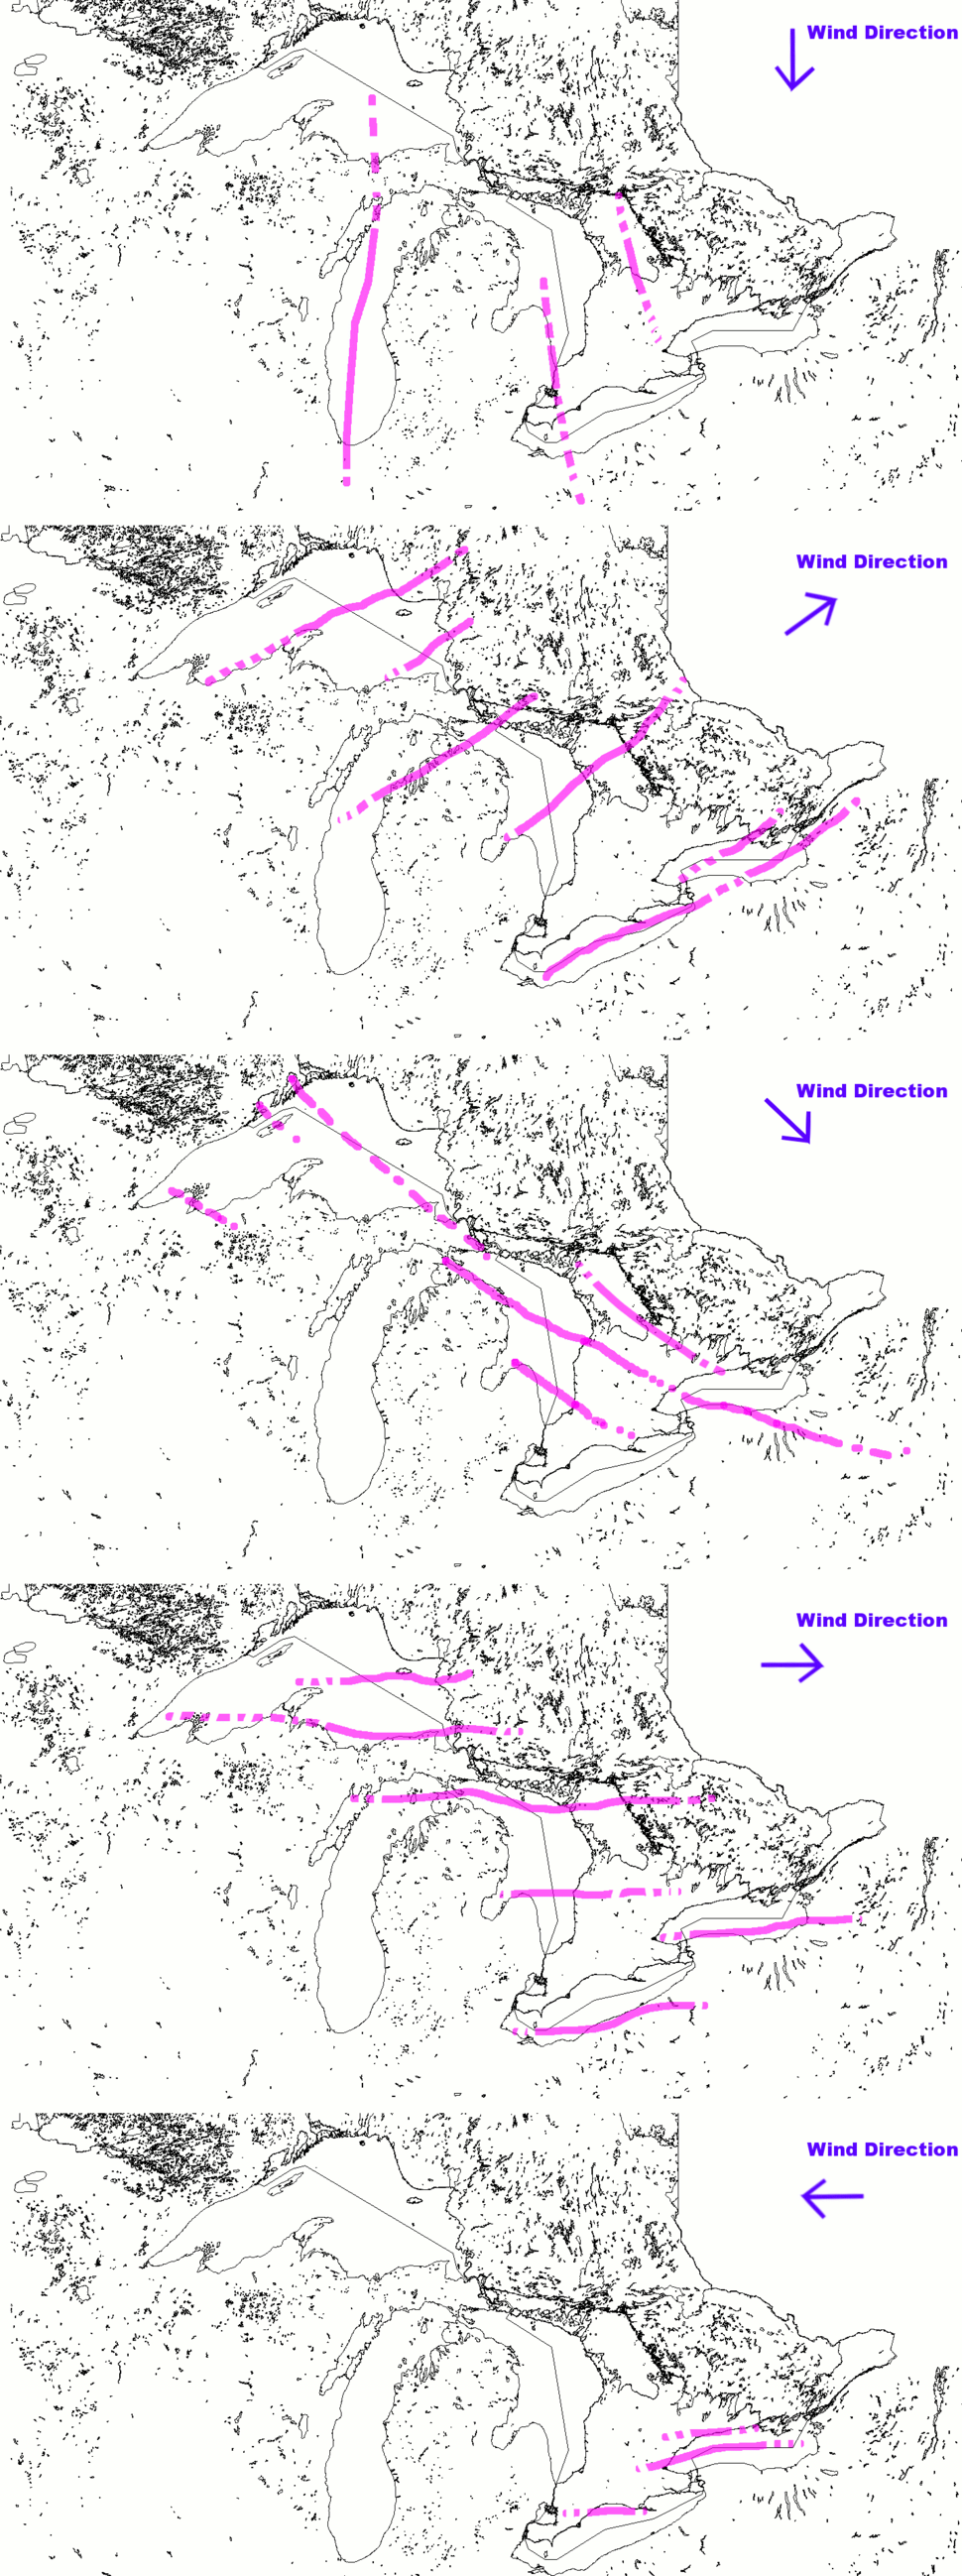 Lake effect snow wind direction bands1